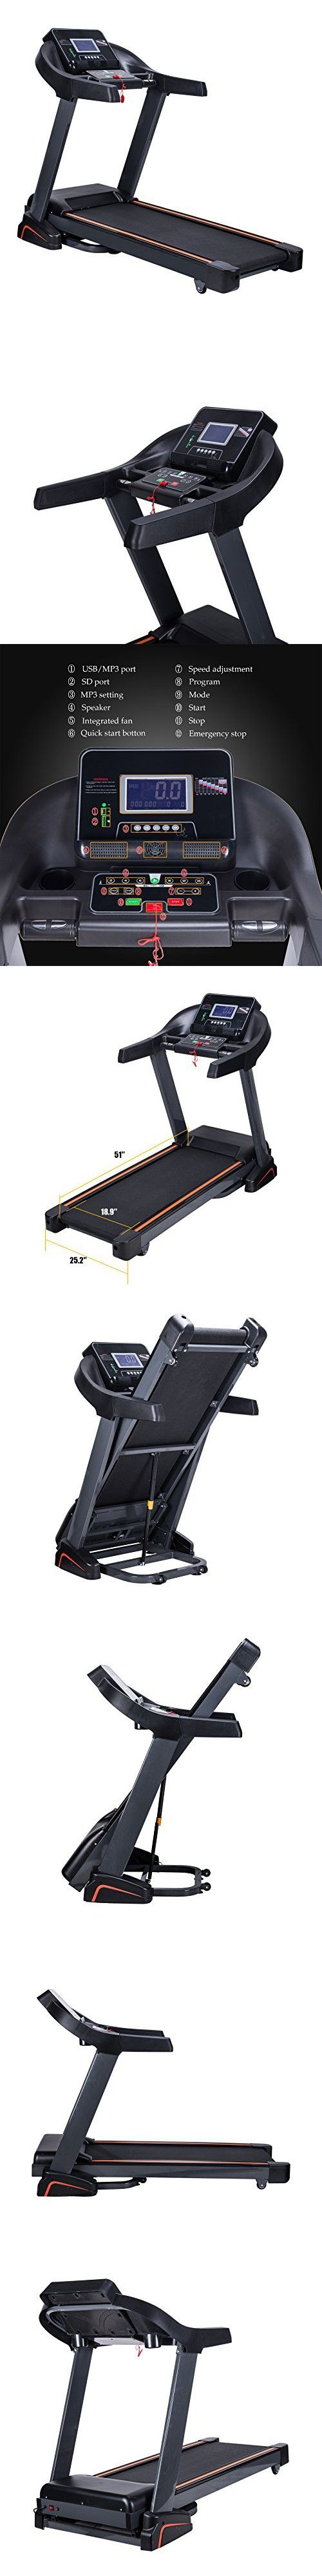 Pinty 2.5HP Foldable Treadmill Extra Wider, MP3 Compatible, BMI Calculator, Fitness Equipment for Homes, Offices, Gyms